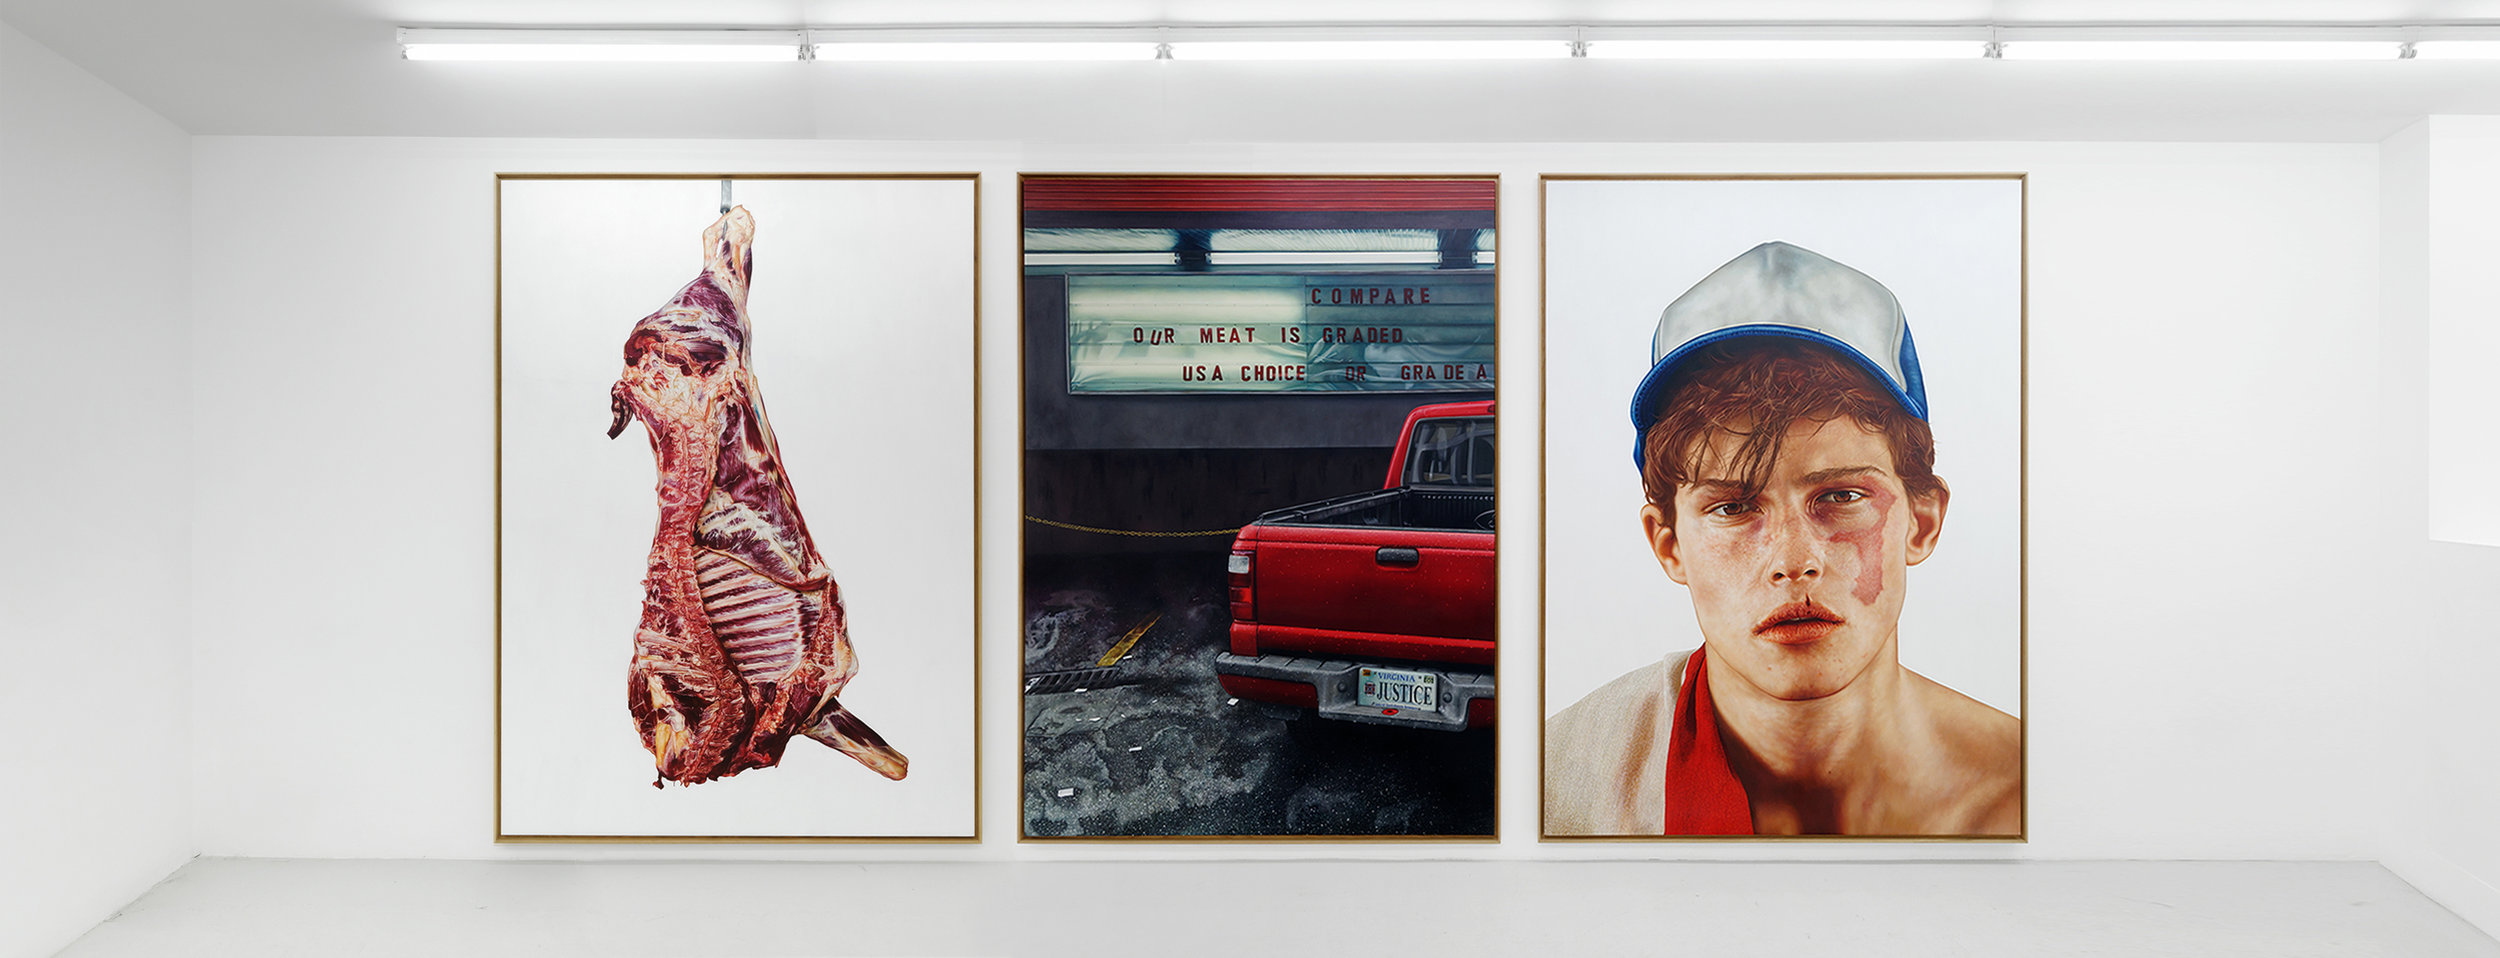 Our Meat Is USA Choice - Triptych - THE KID - 2019 - Framed preview - Oil and egg tempera on canvas - 275 x 200 x 6 cm per panel 275 x 600 x 6 cm in total ©THE KID all rights reserved - Gallery View Def.jpg